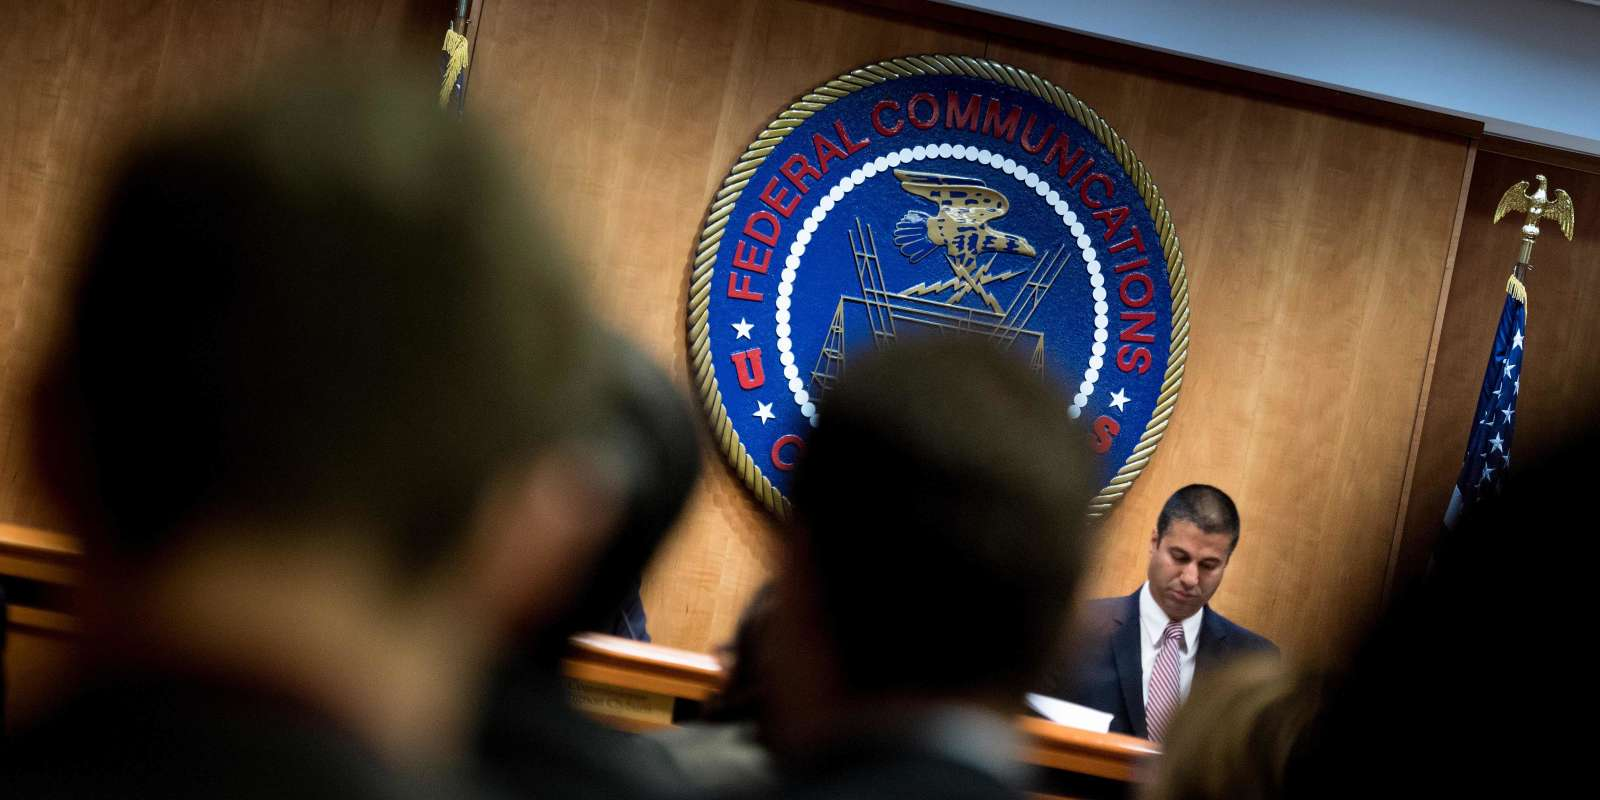 FCC Chairman Ajit Pai listens during a hearing at the Federal Communications Commission on December 14, 2017 in Washington, DC. / AFP / Brendan Smialowski